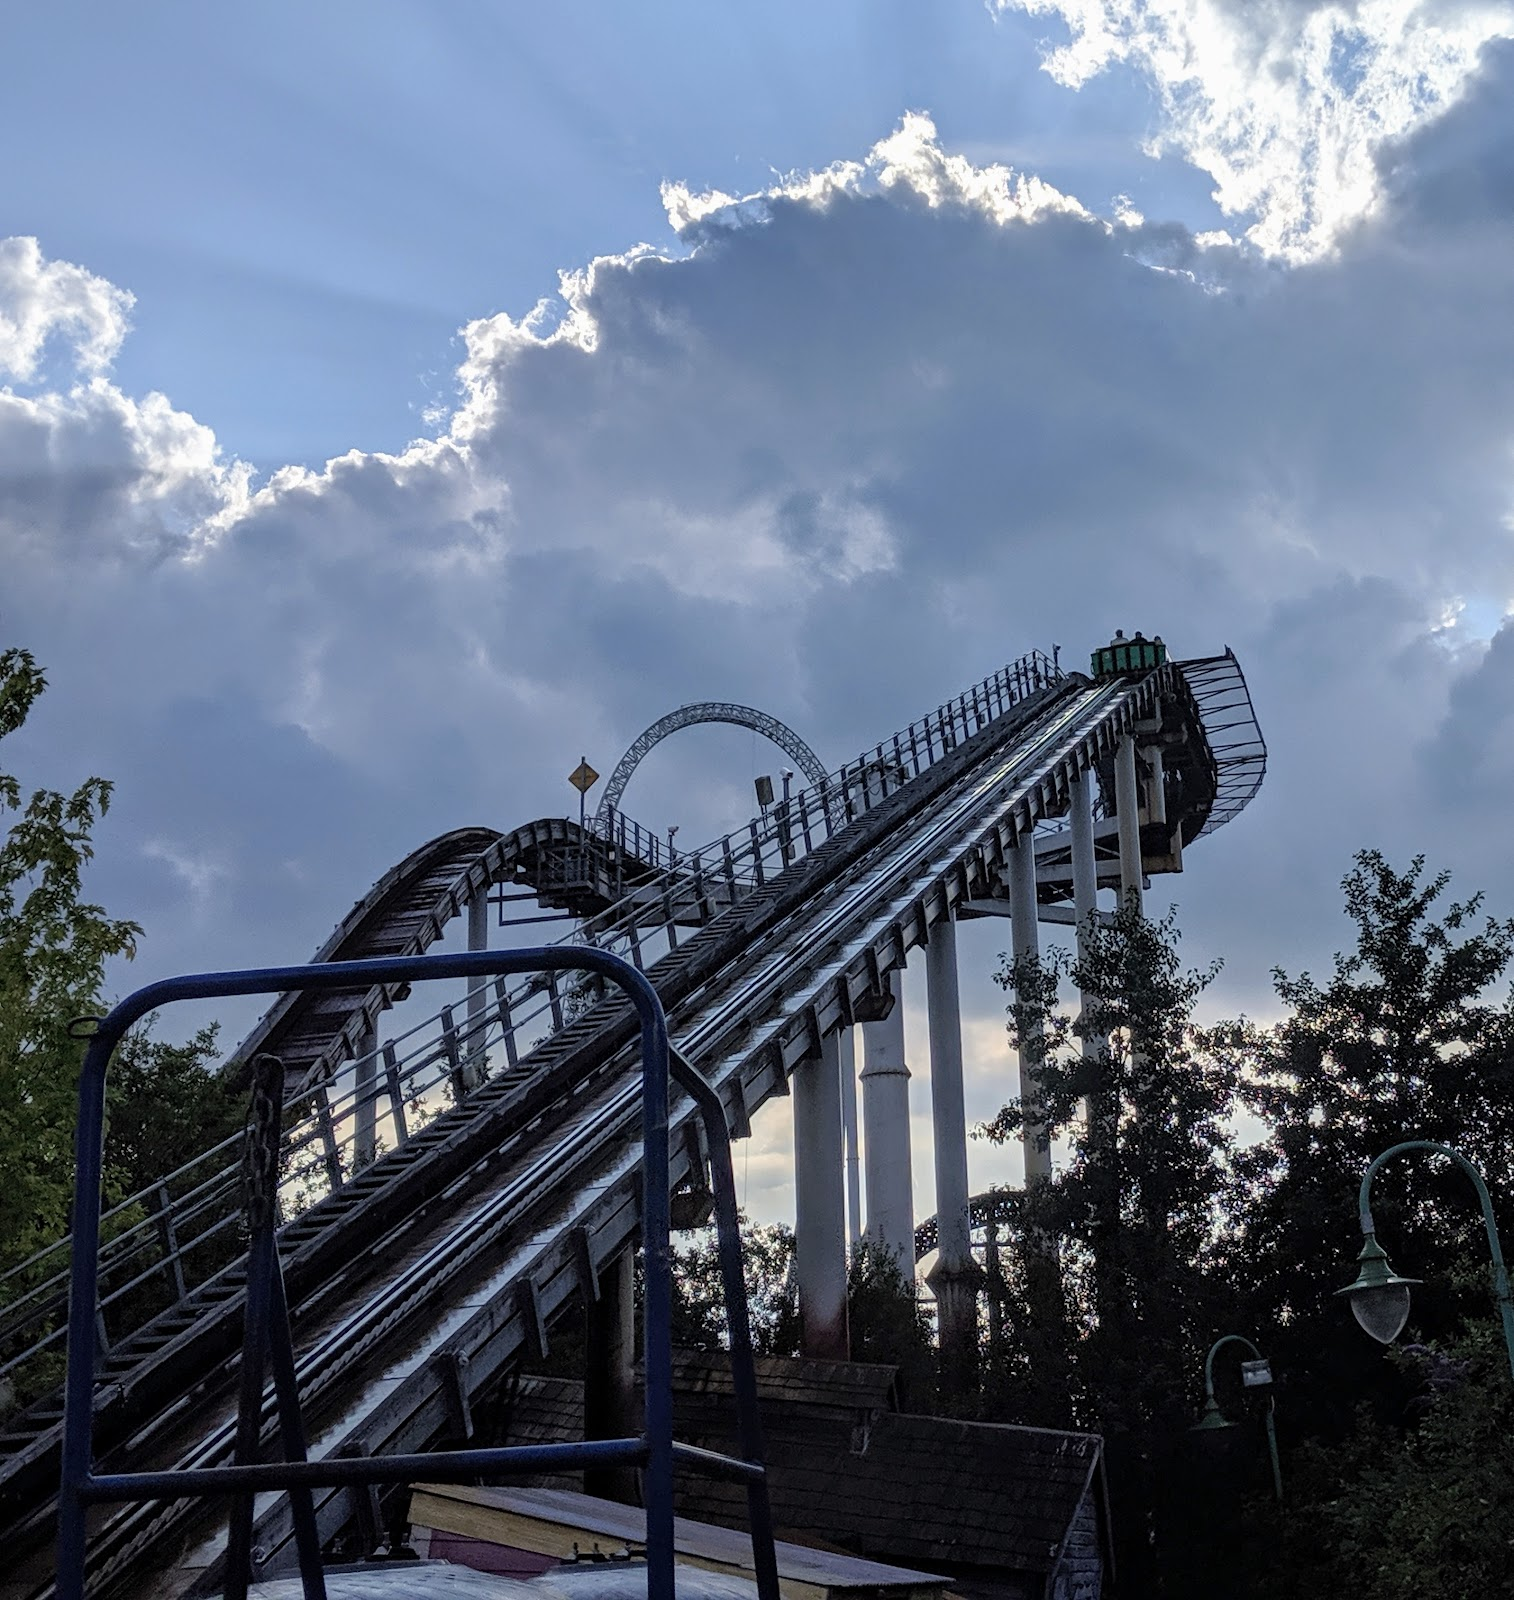 Exploring the Southern Merlin Theme Parks with Tweens  - Tidal Wave at Thorpe Park